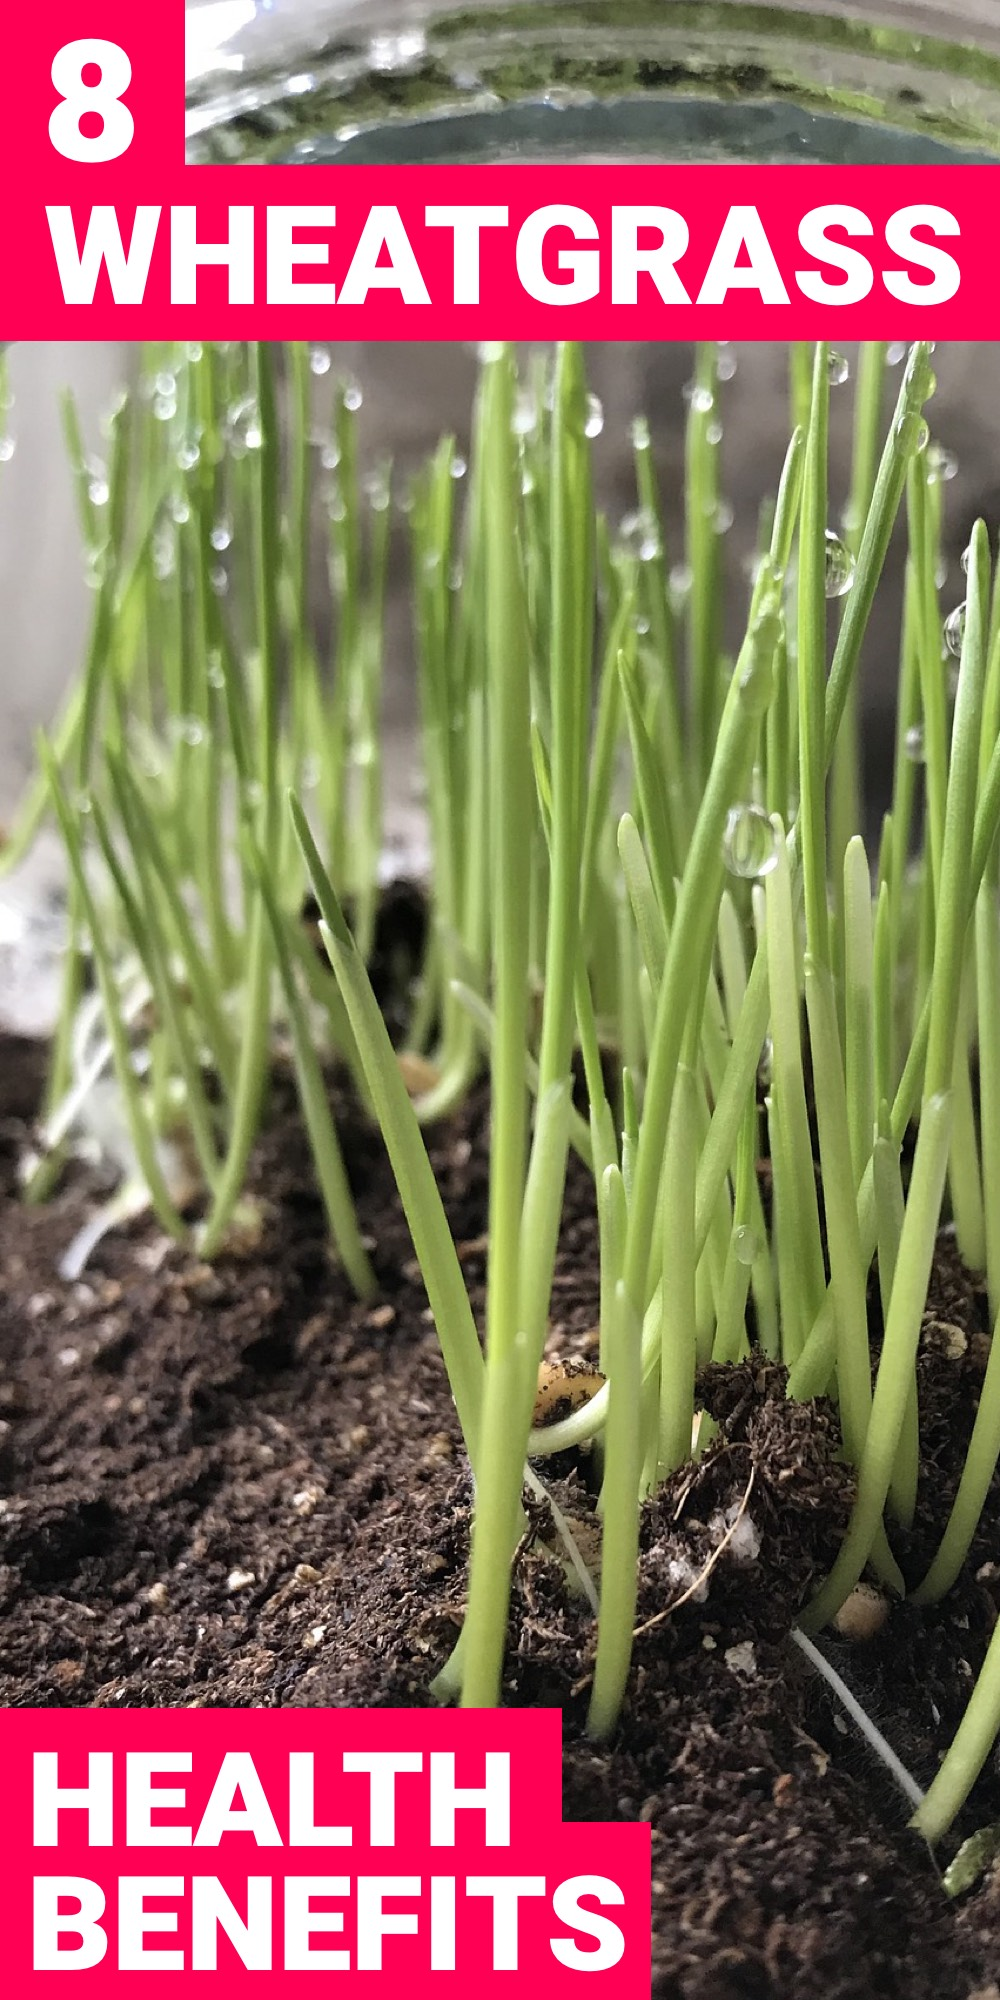 With wheatgrass in your diet, your health will be improved a lot. Here are 8 wheatgrass benefits that you need in your life.